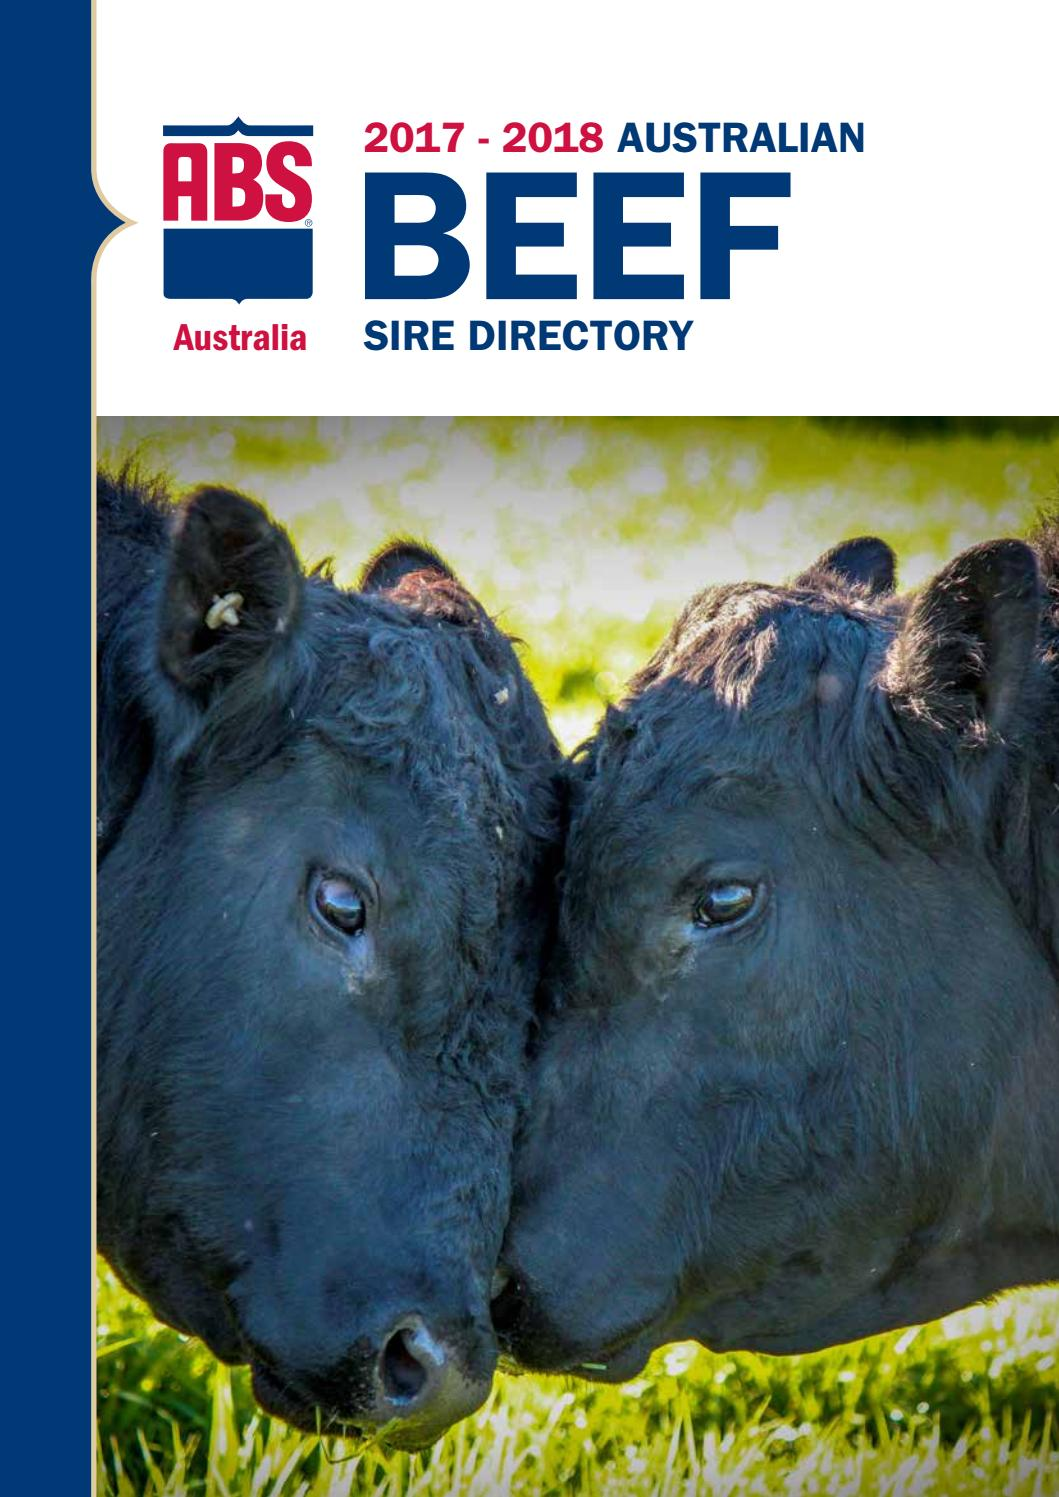 Abs Australia 2017 18 Beef Sire Directory By Abs Global